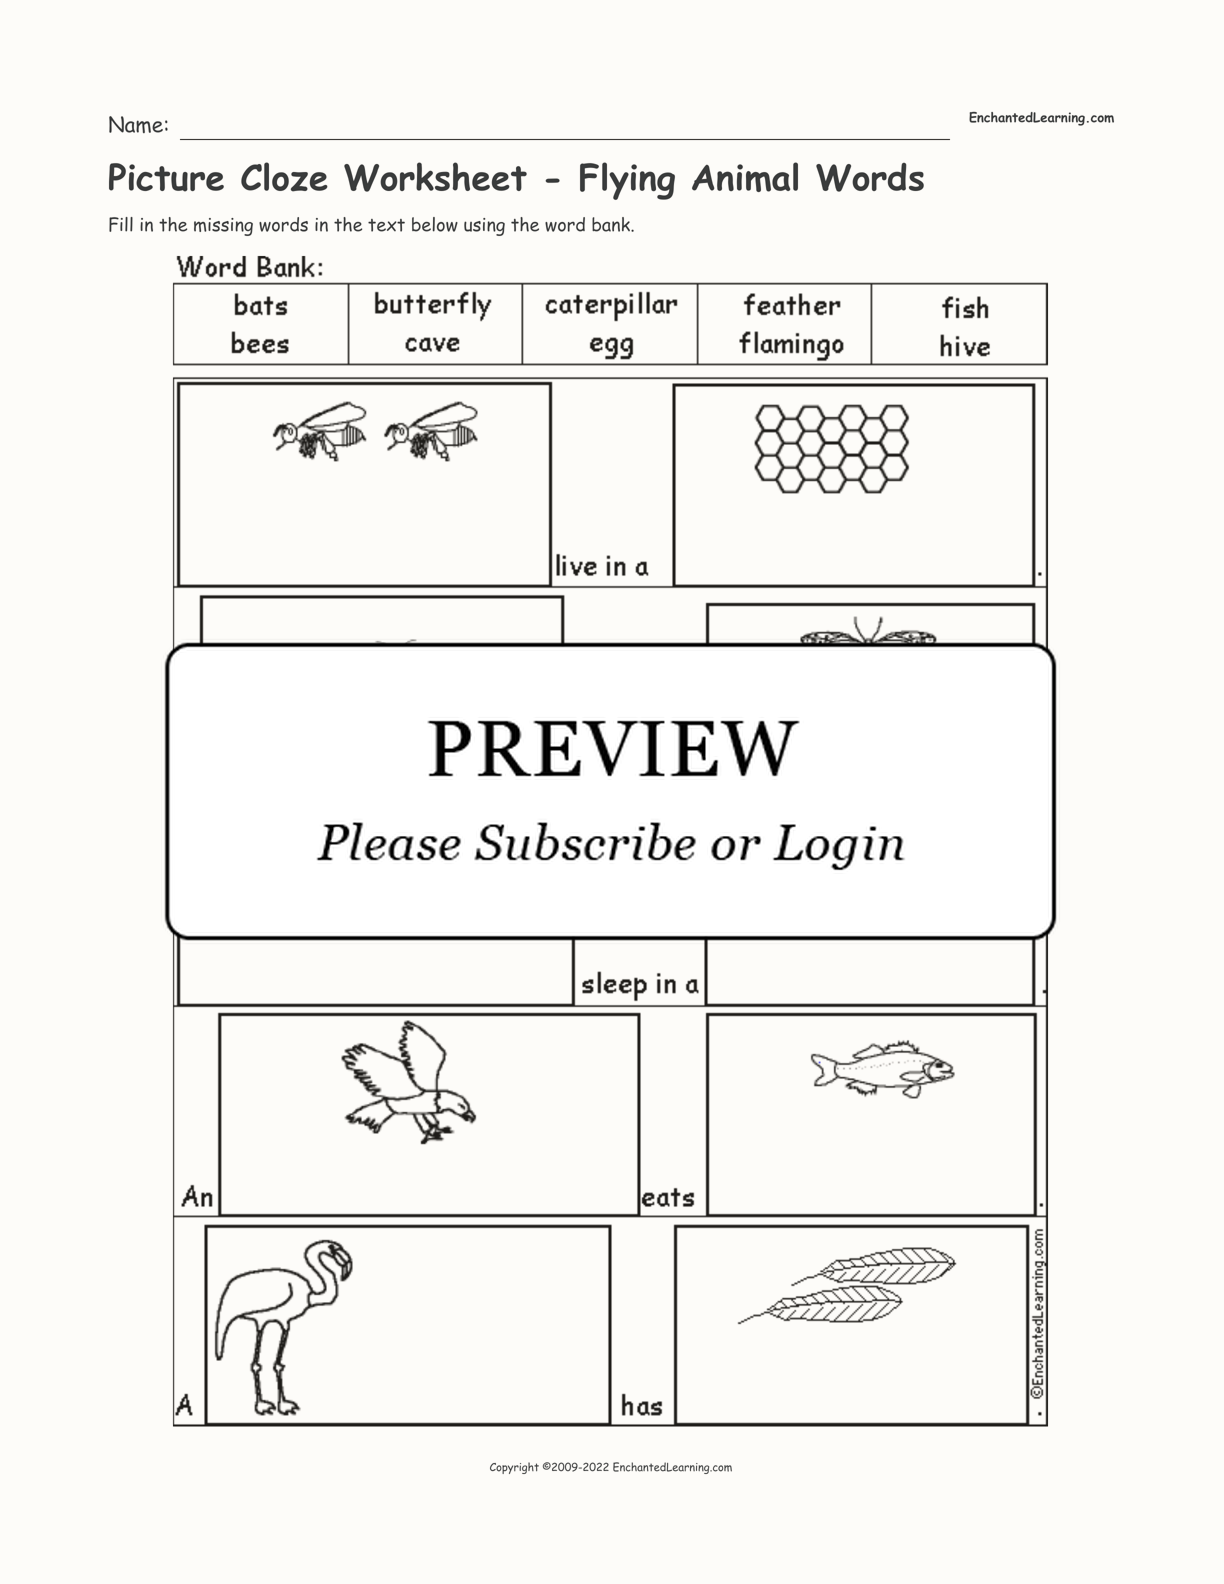 Picture Cloze Worksheet - Flying Animal Words interactive worksheet page 1